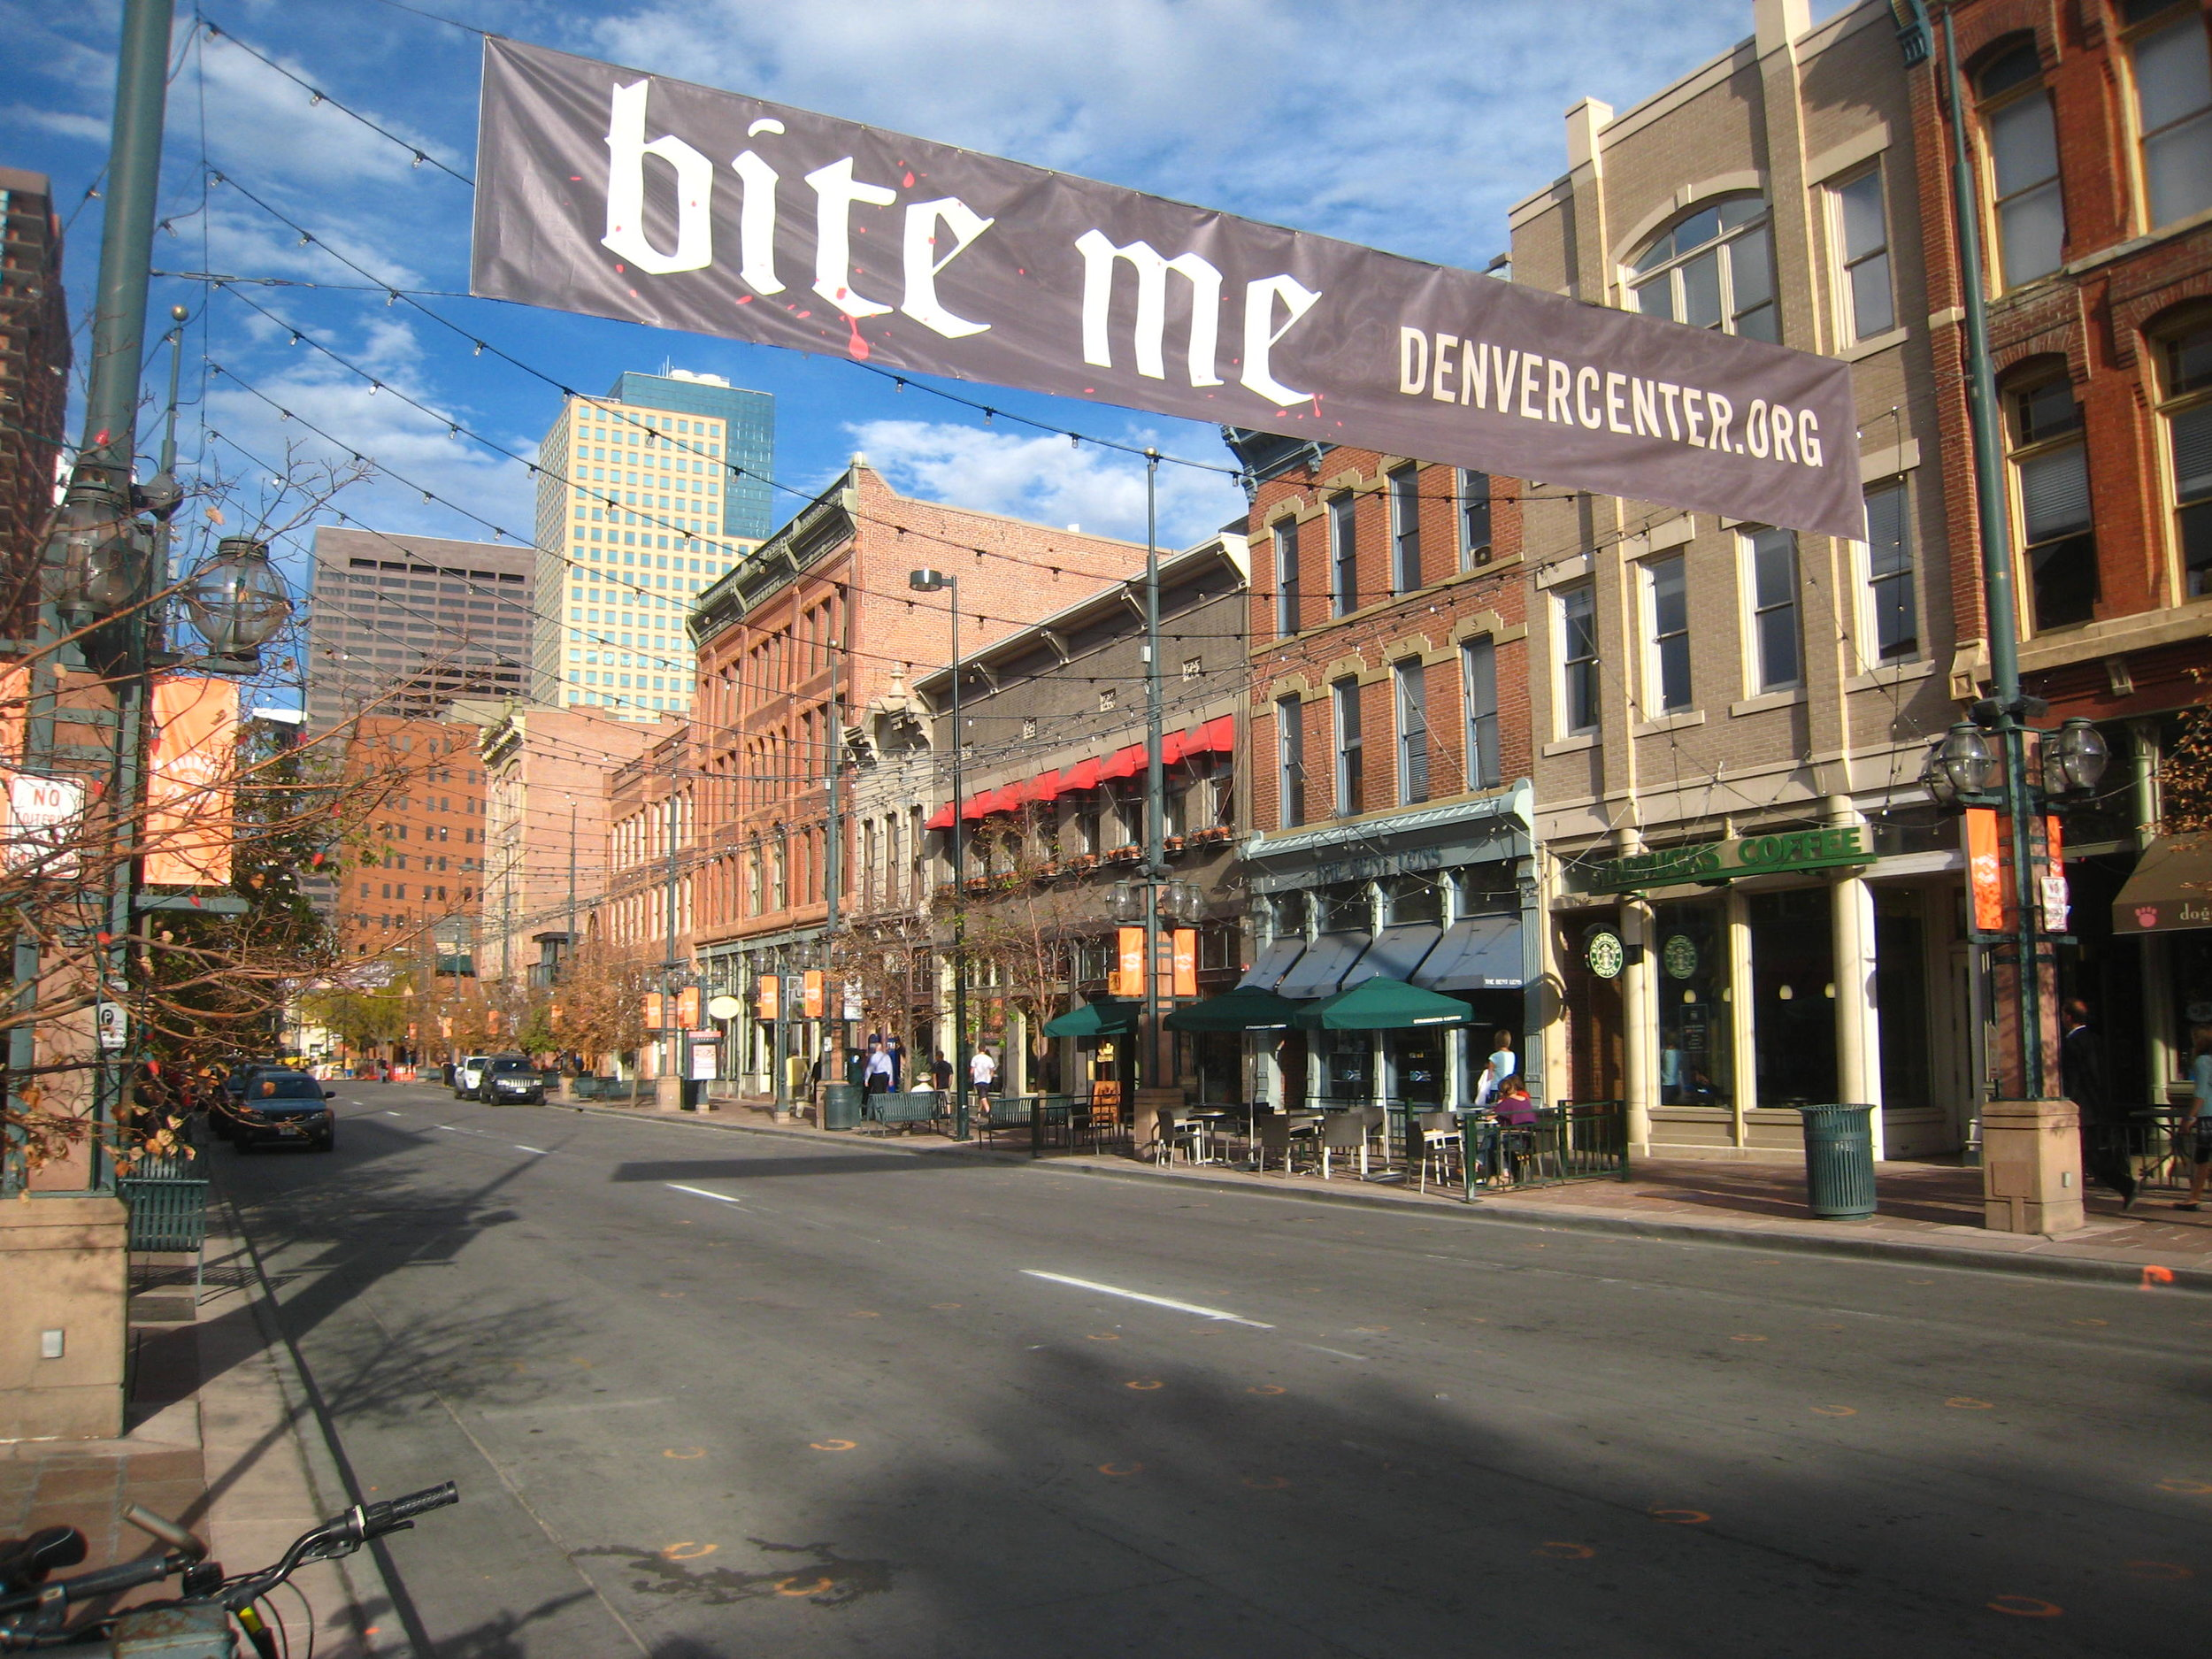 Larimer Square is also a popular spot for restaurants and bars. Image credit:  brotherlywalks / Creative Commons